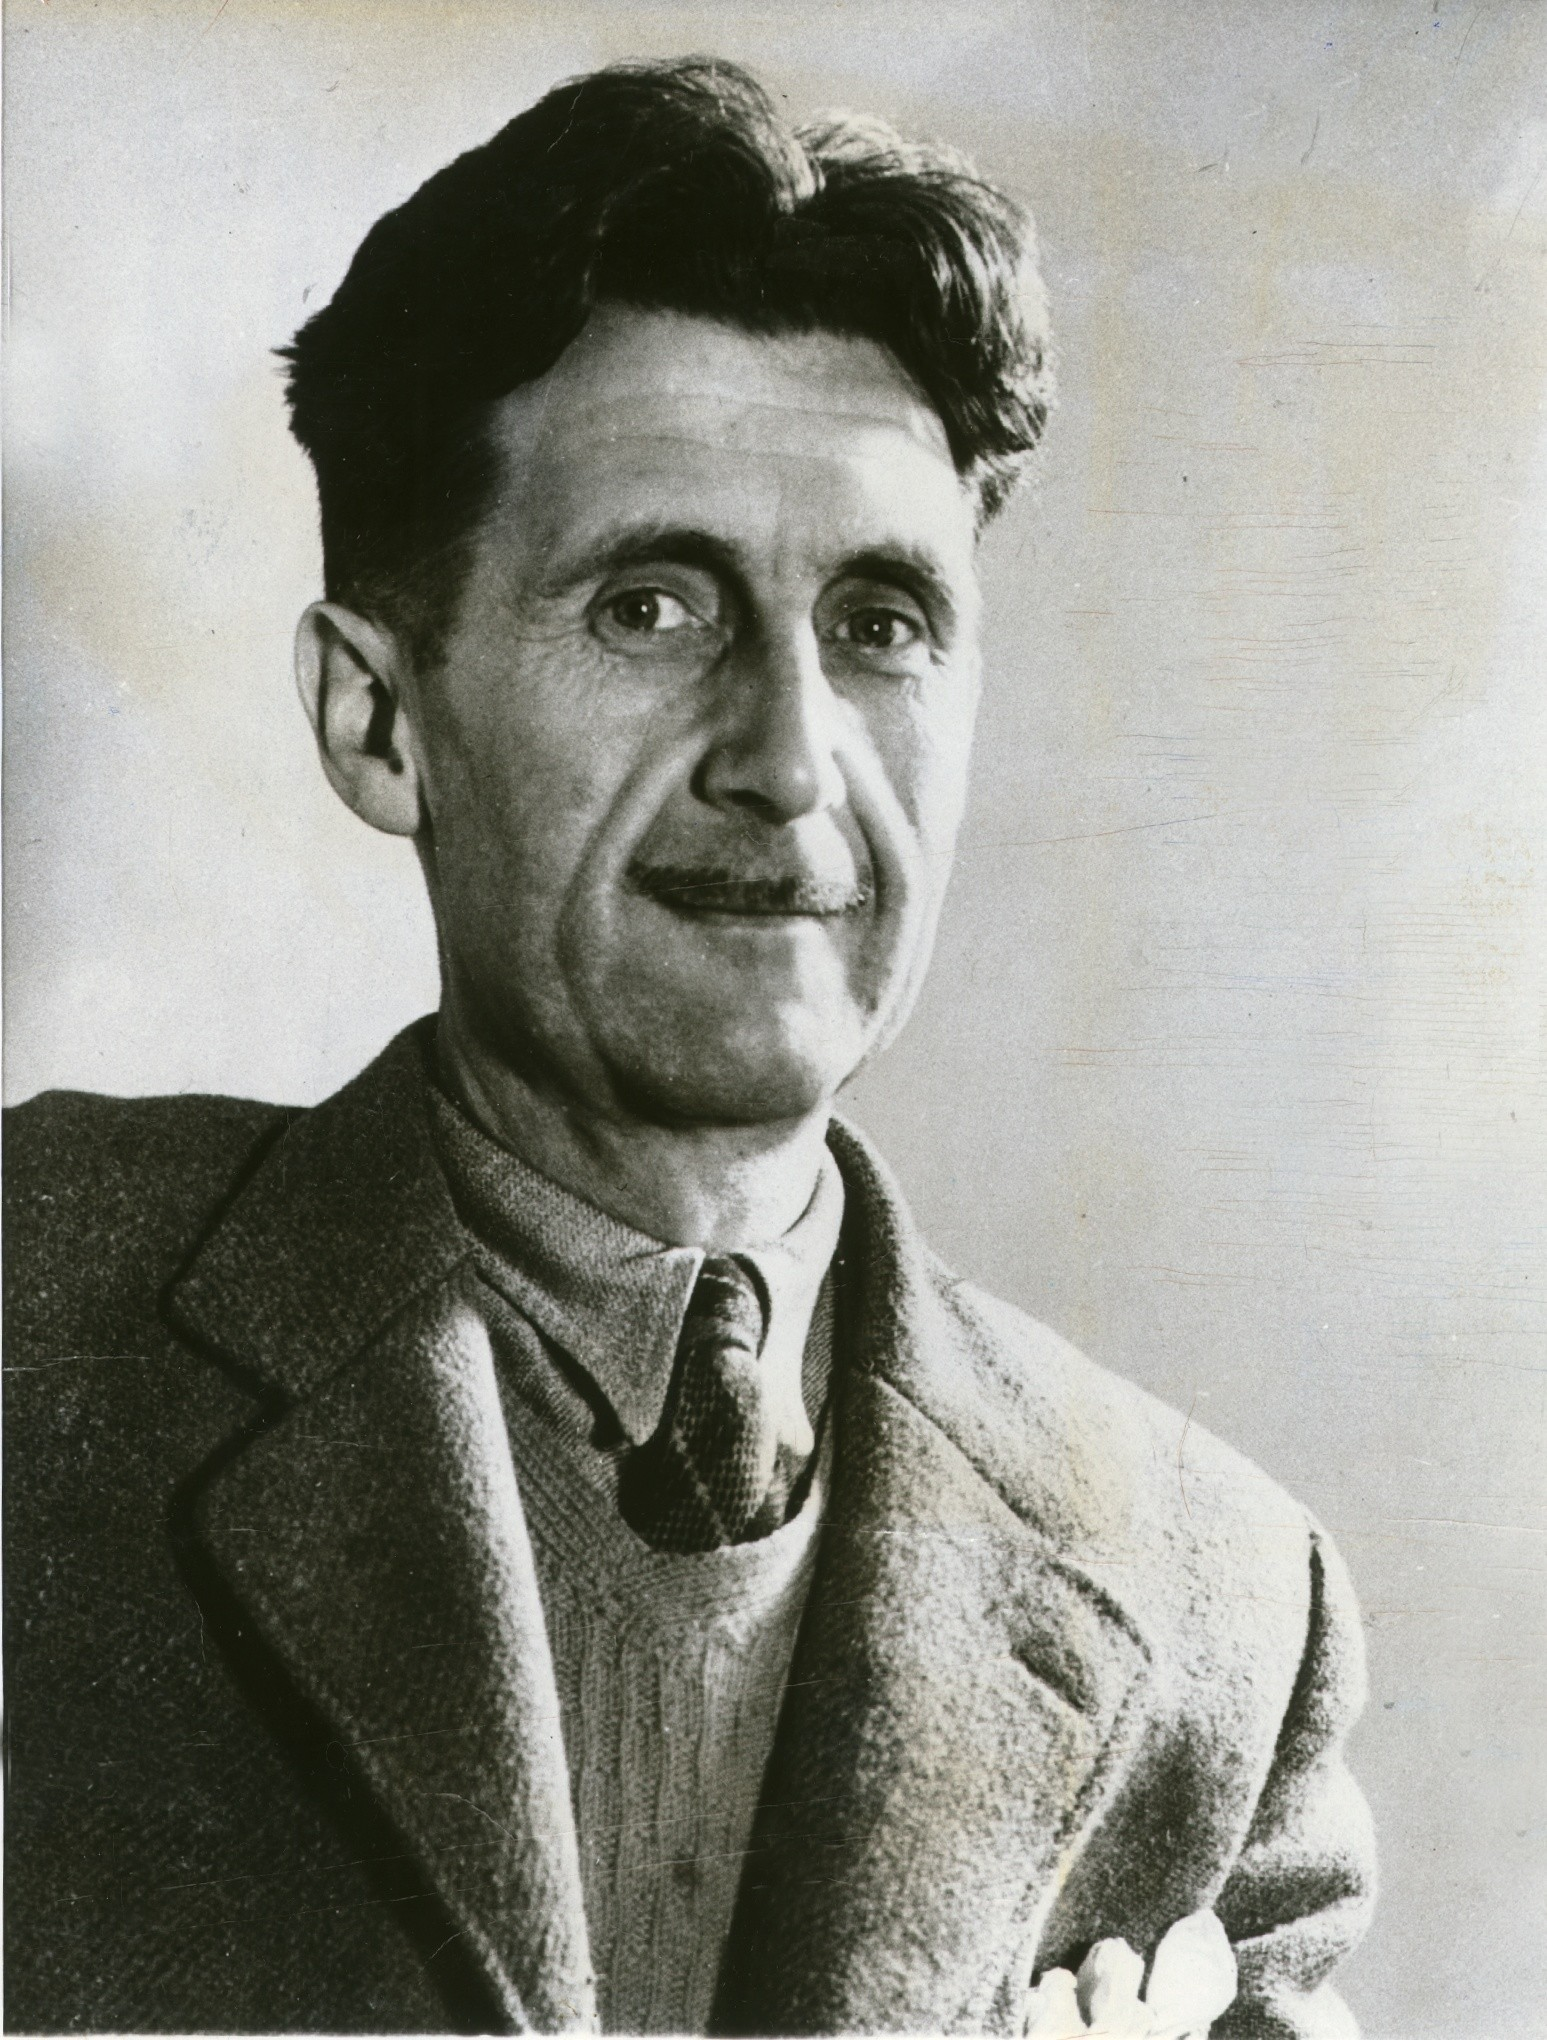 essays on george orwell Ebooks@adelaide the university of adelaide library university of adelaide south australia 5005.